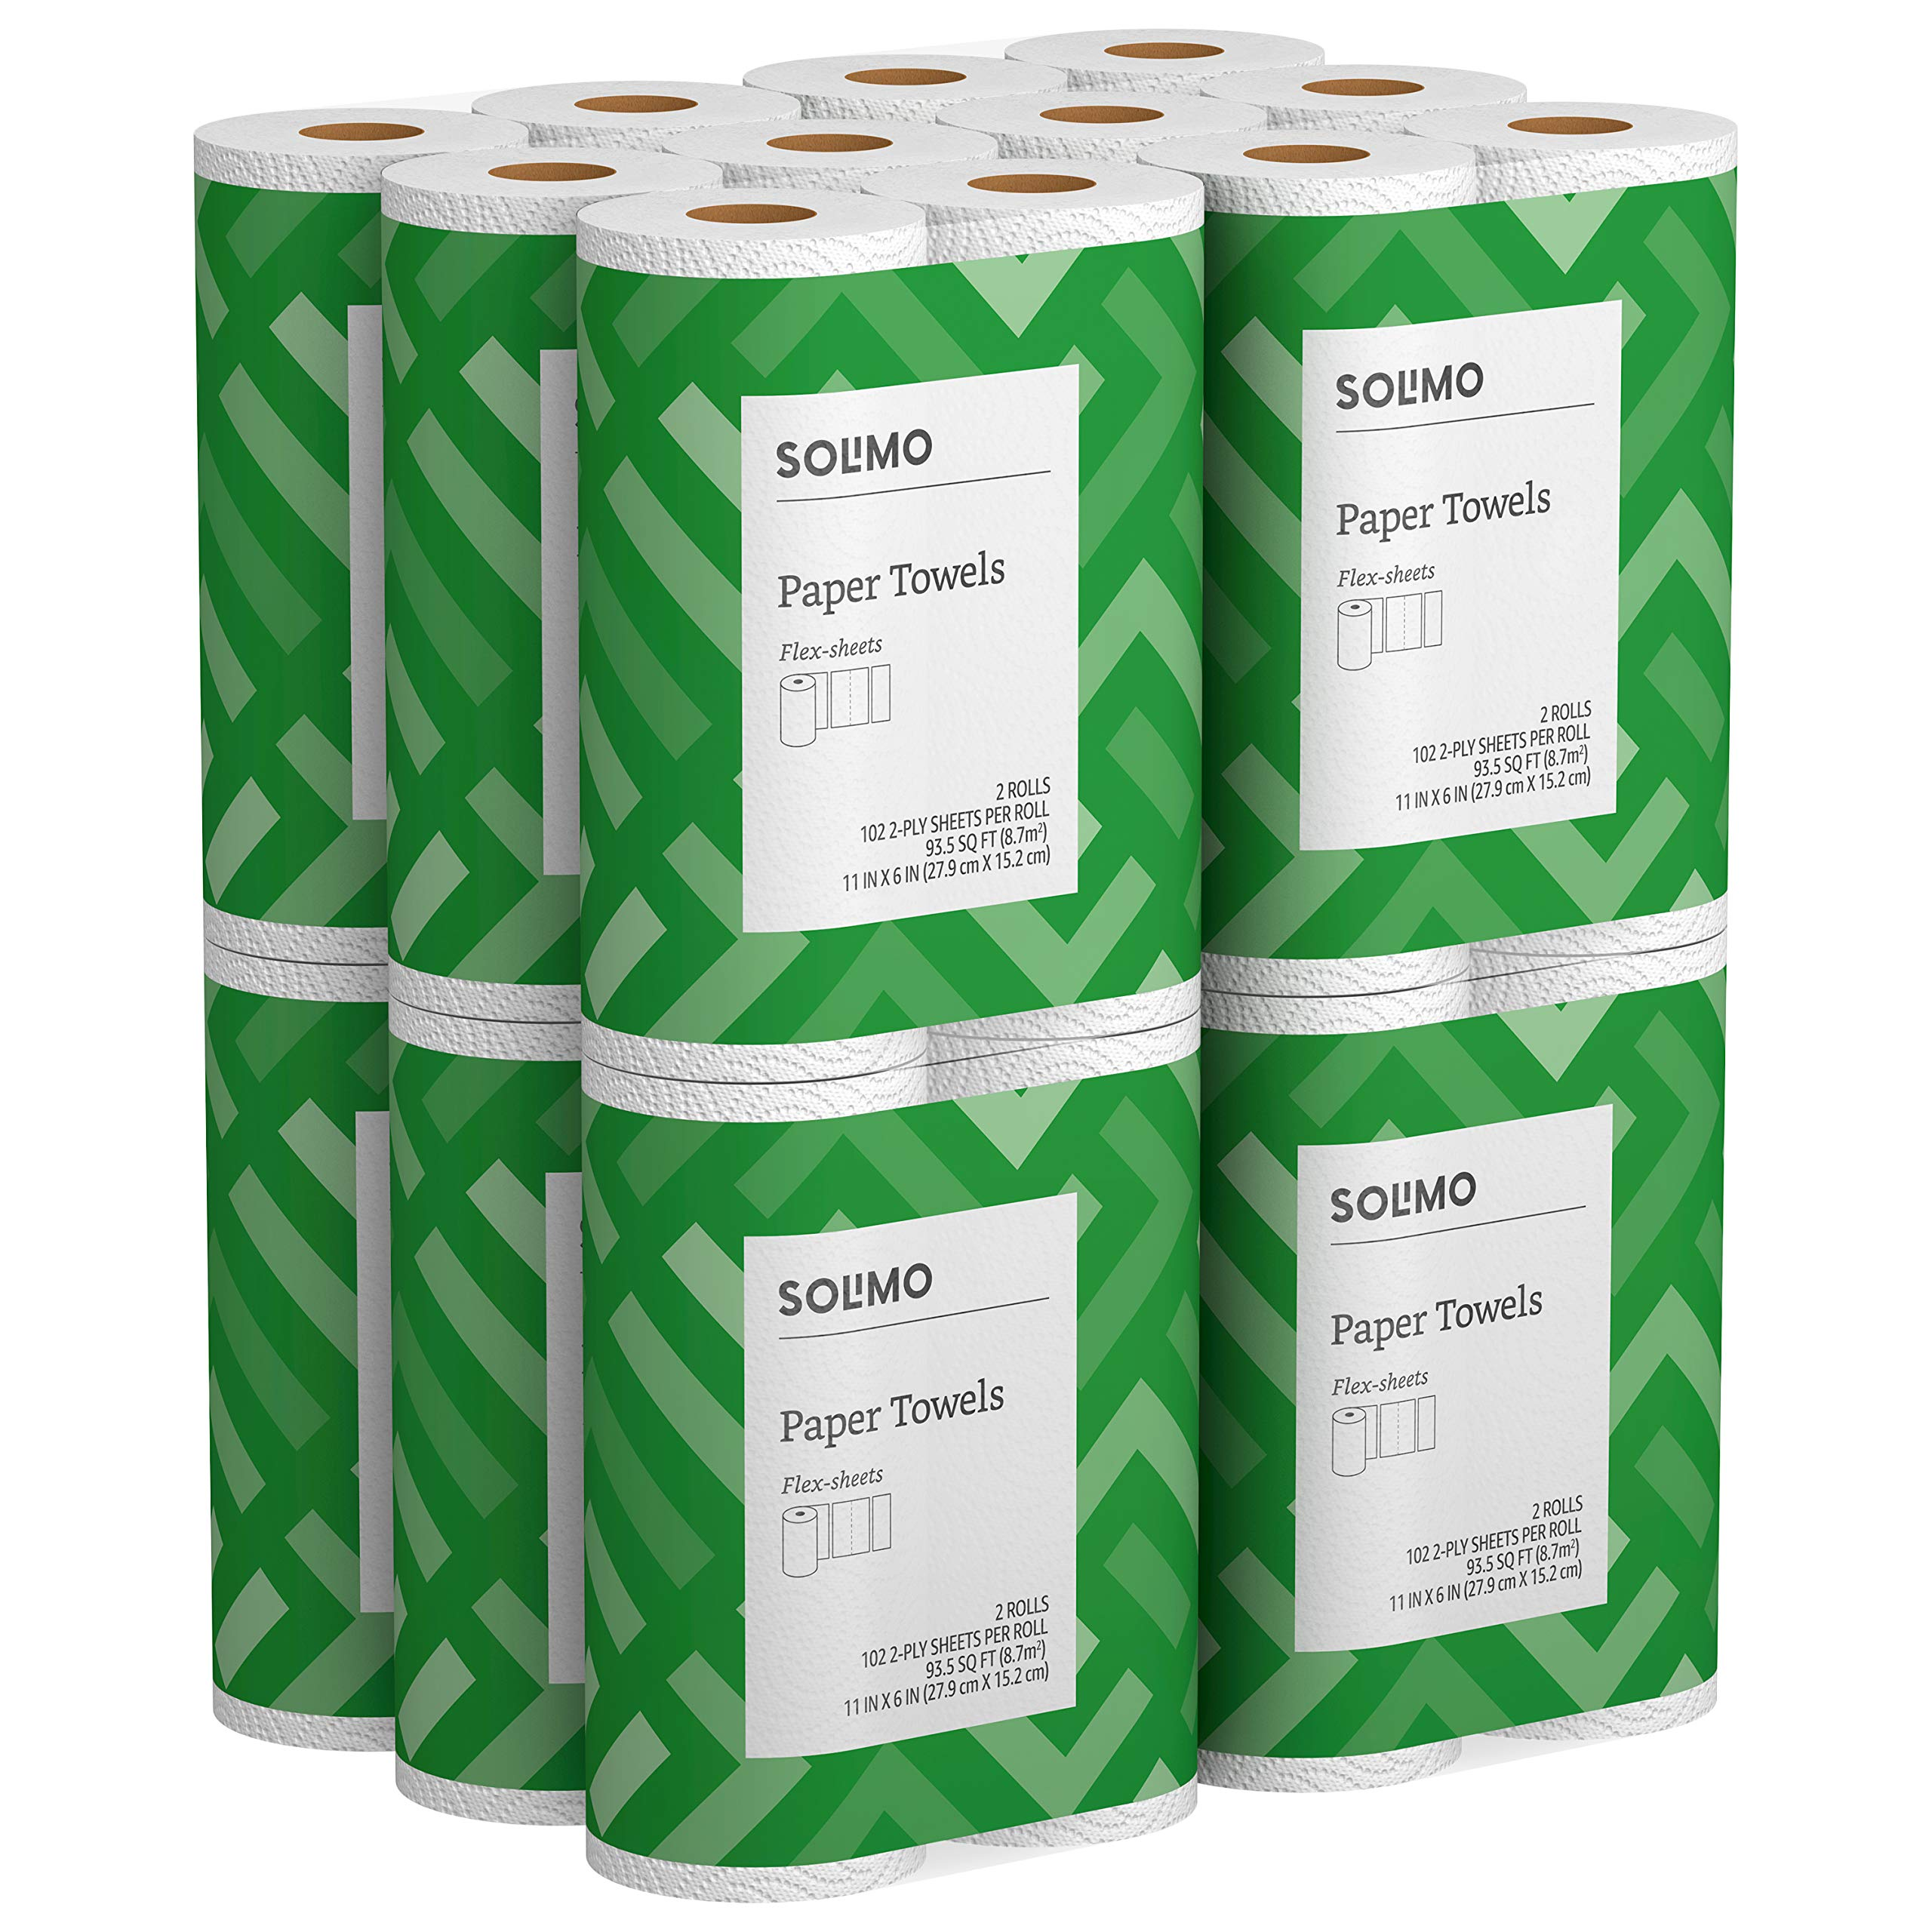 Solimo Basic Flex-Sheets Paper Towels, 24 Value Rolls, White, 102 Sheets per Roll by Solimo